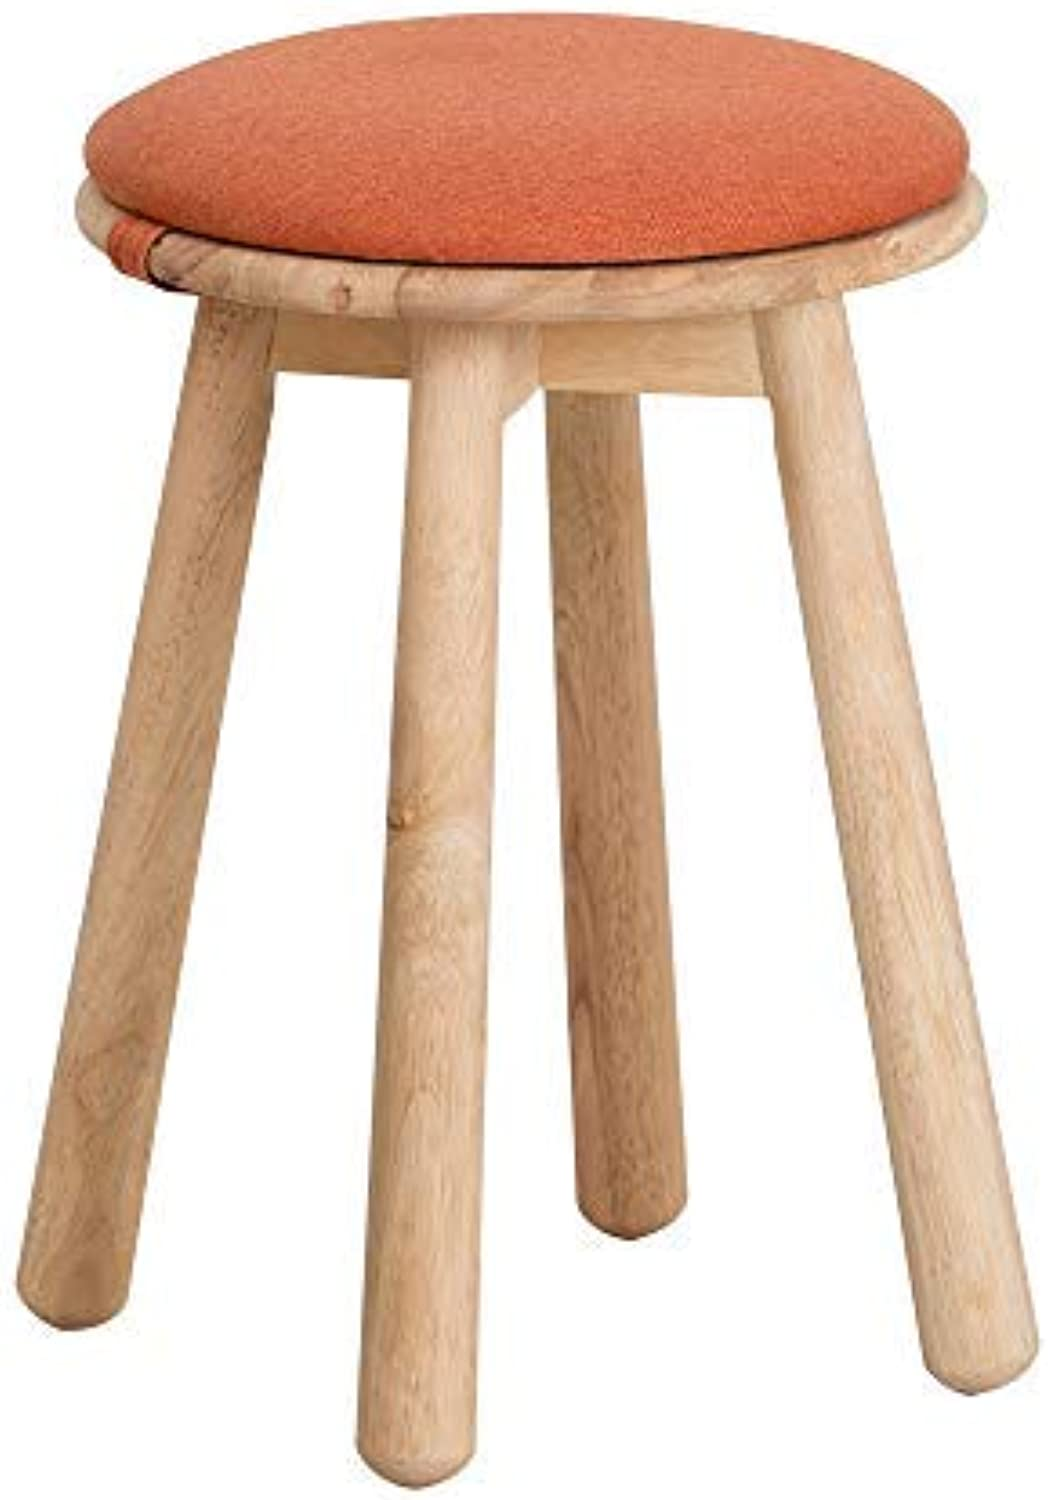 Heywood Linen Fabric Round Stool with Solid Wood Legs Padded Stool with Removable Design (orange)